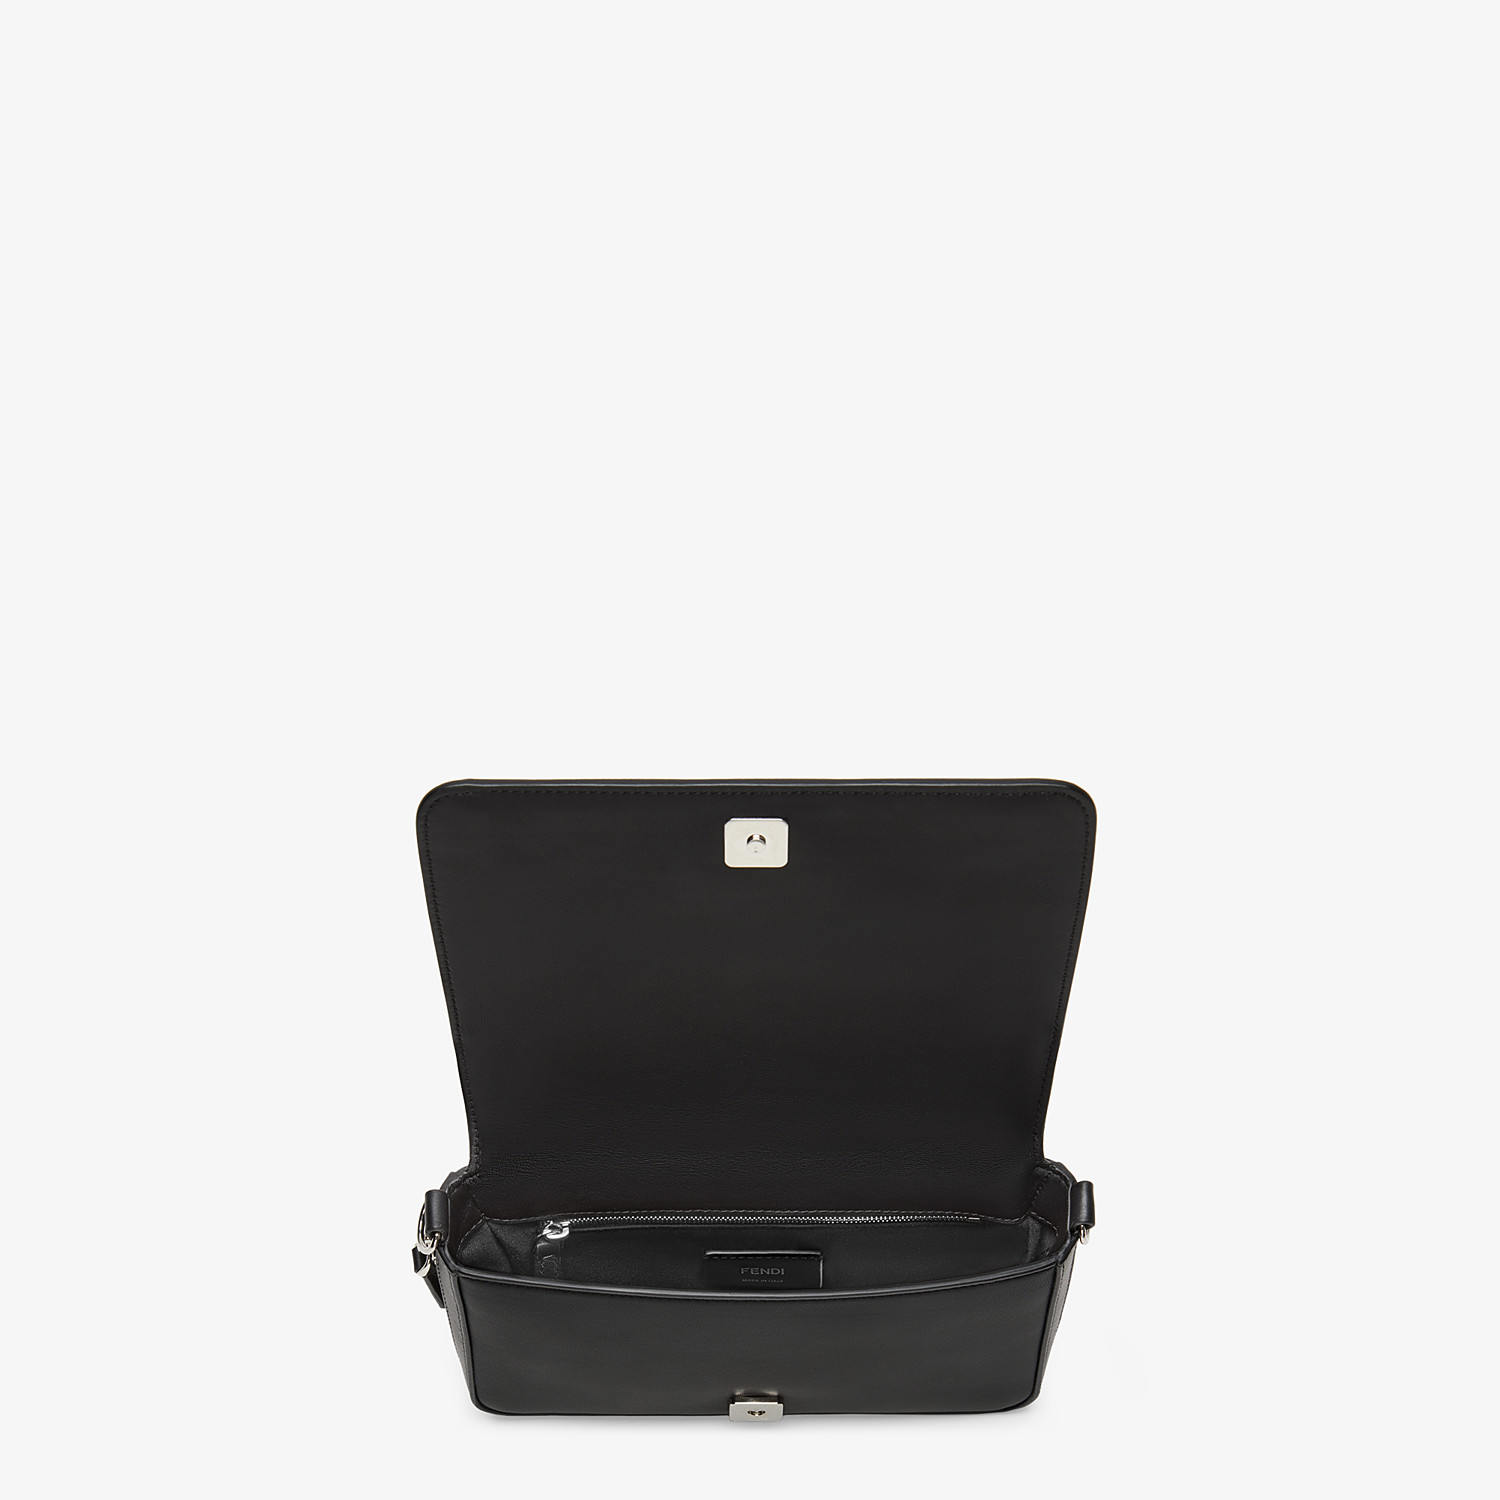 FENDI FLAP BAG - Black nappa leather bag - view 5 detail